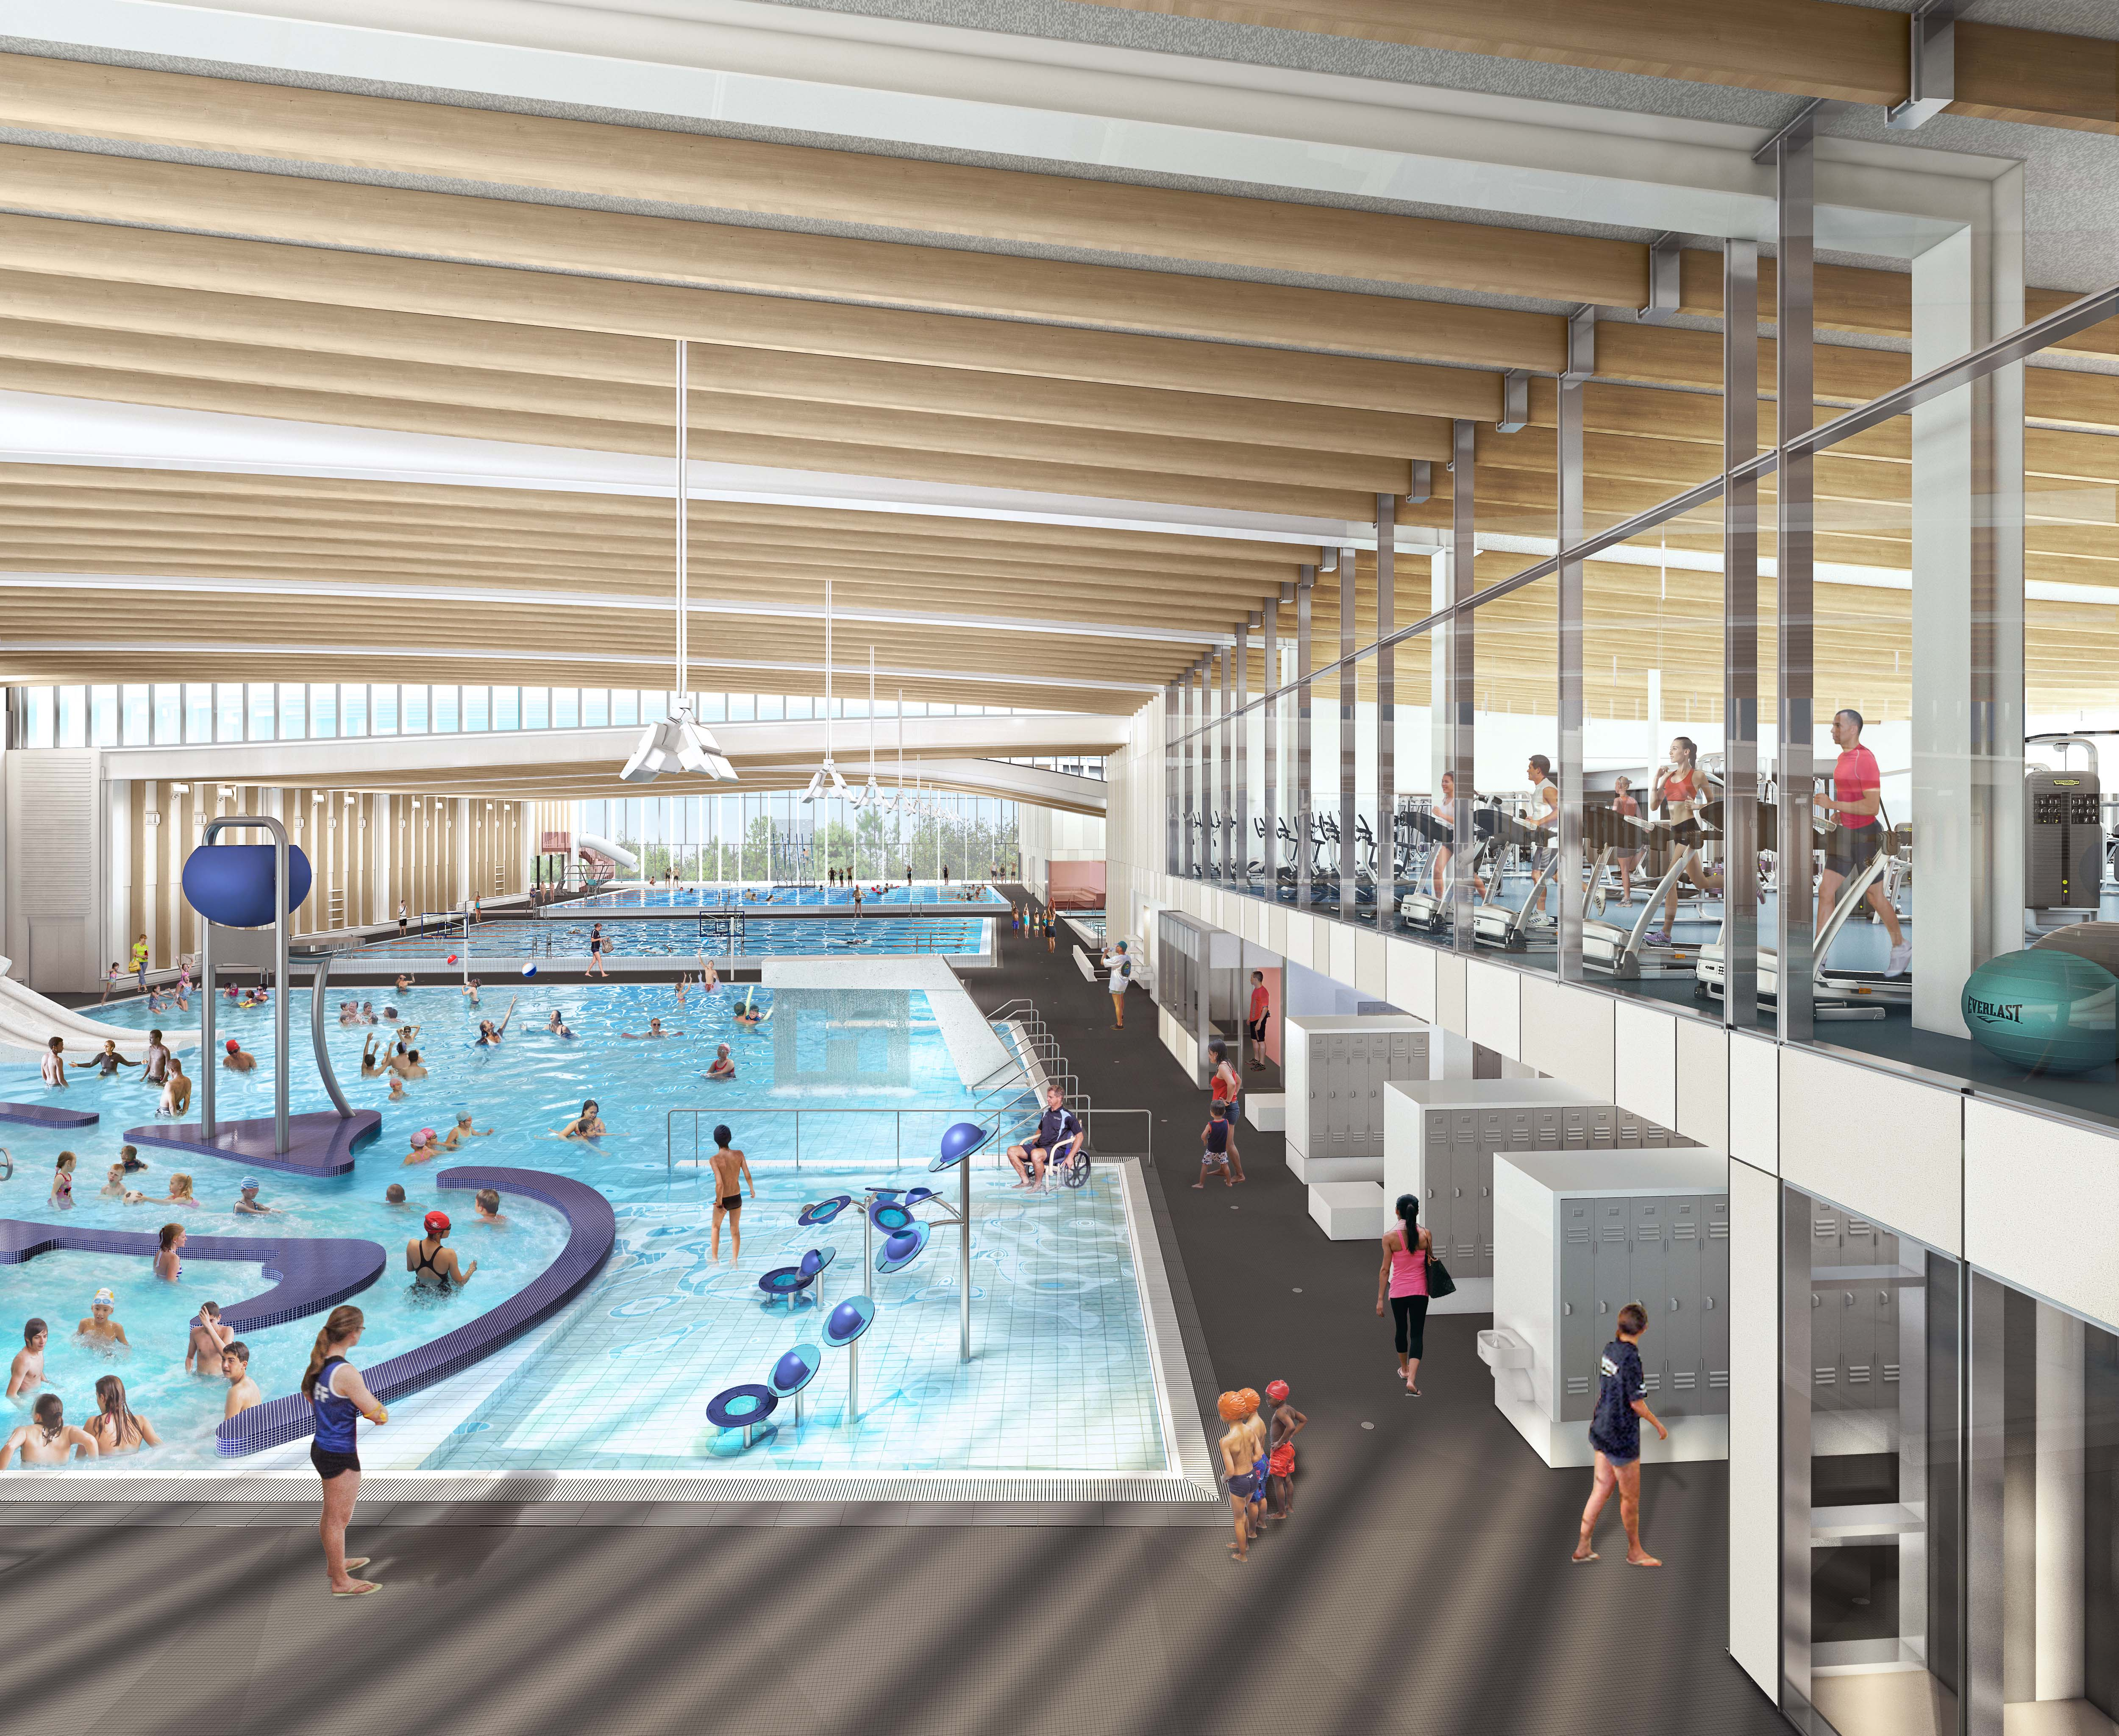 Rendering of the Minoru Complex - view from the pools to the Fitness Centre - July 2016